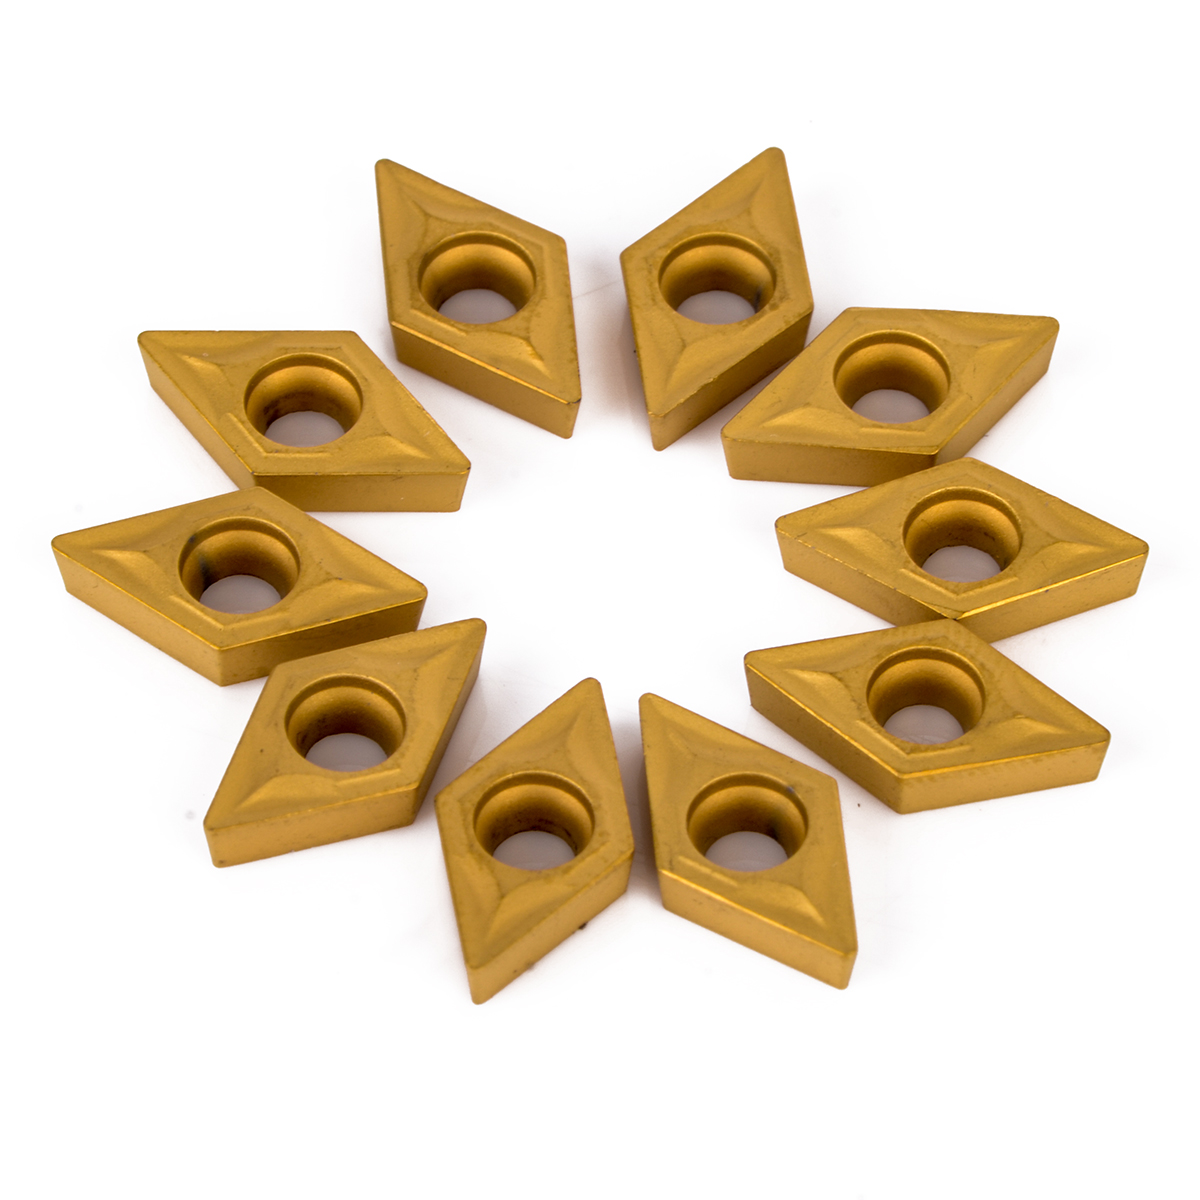 10pcs DCMT070204 YBC251 Carbide Inserts Durable Blades CNC Lathe Turning Cutter For Machining Processing Steel 7 X 7 X 2mm